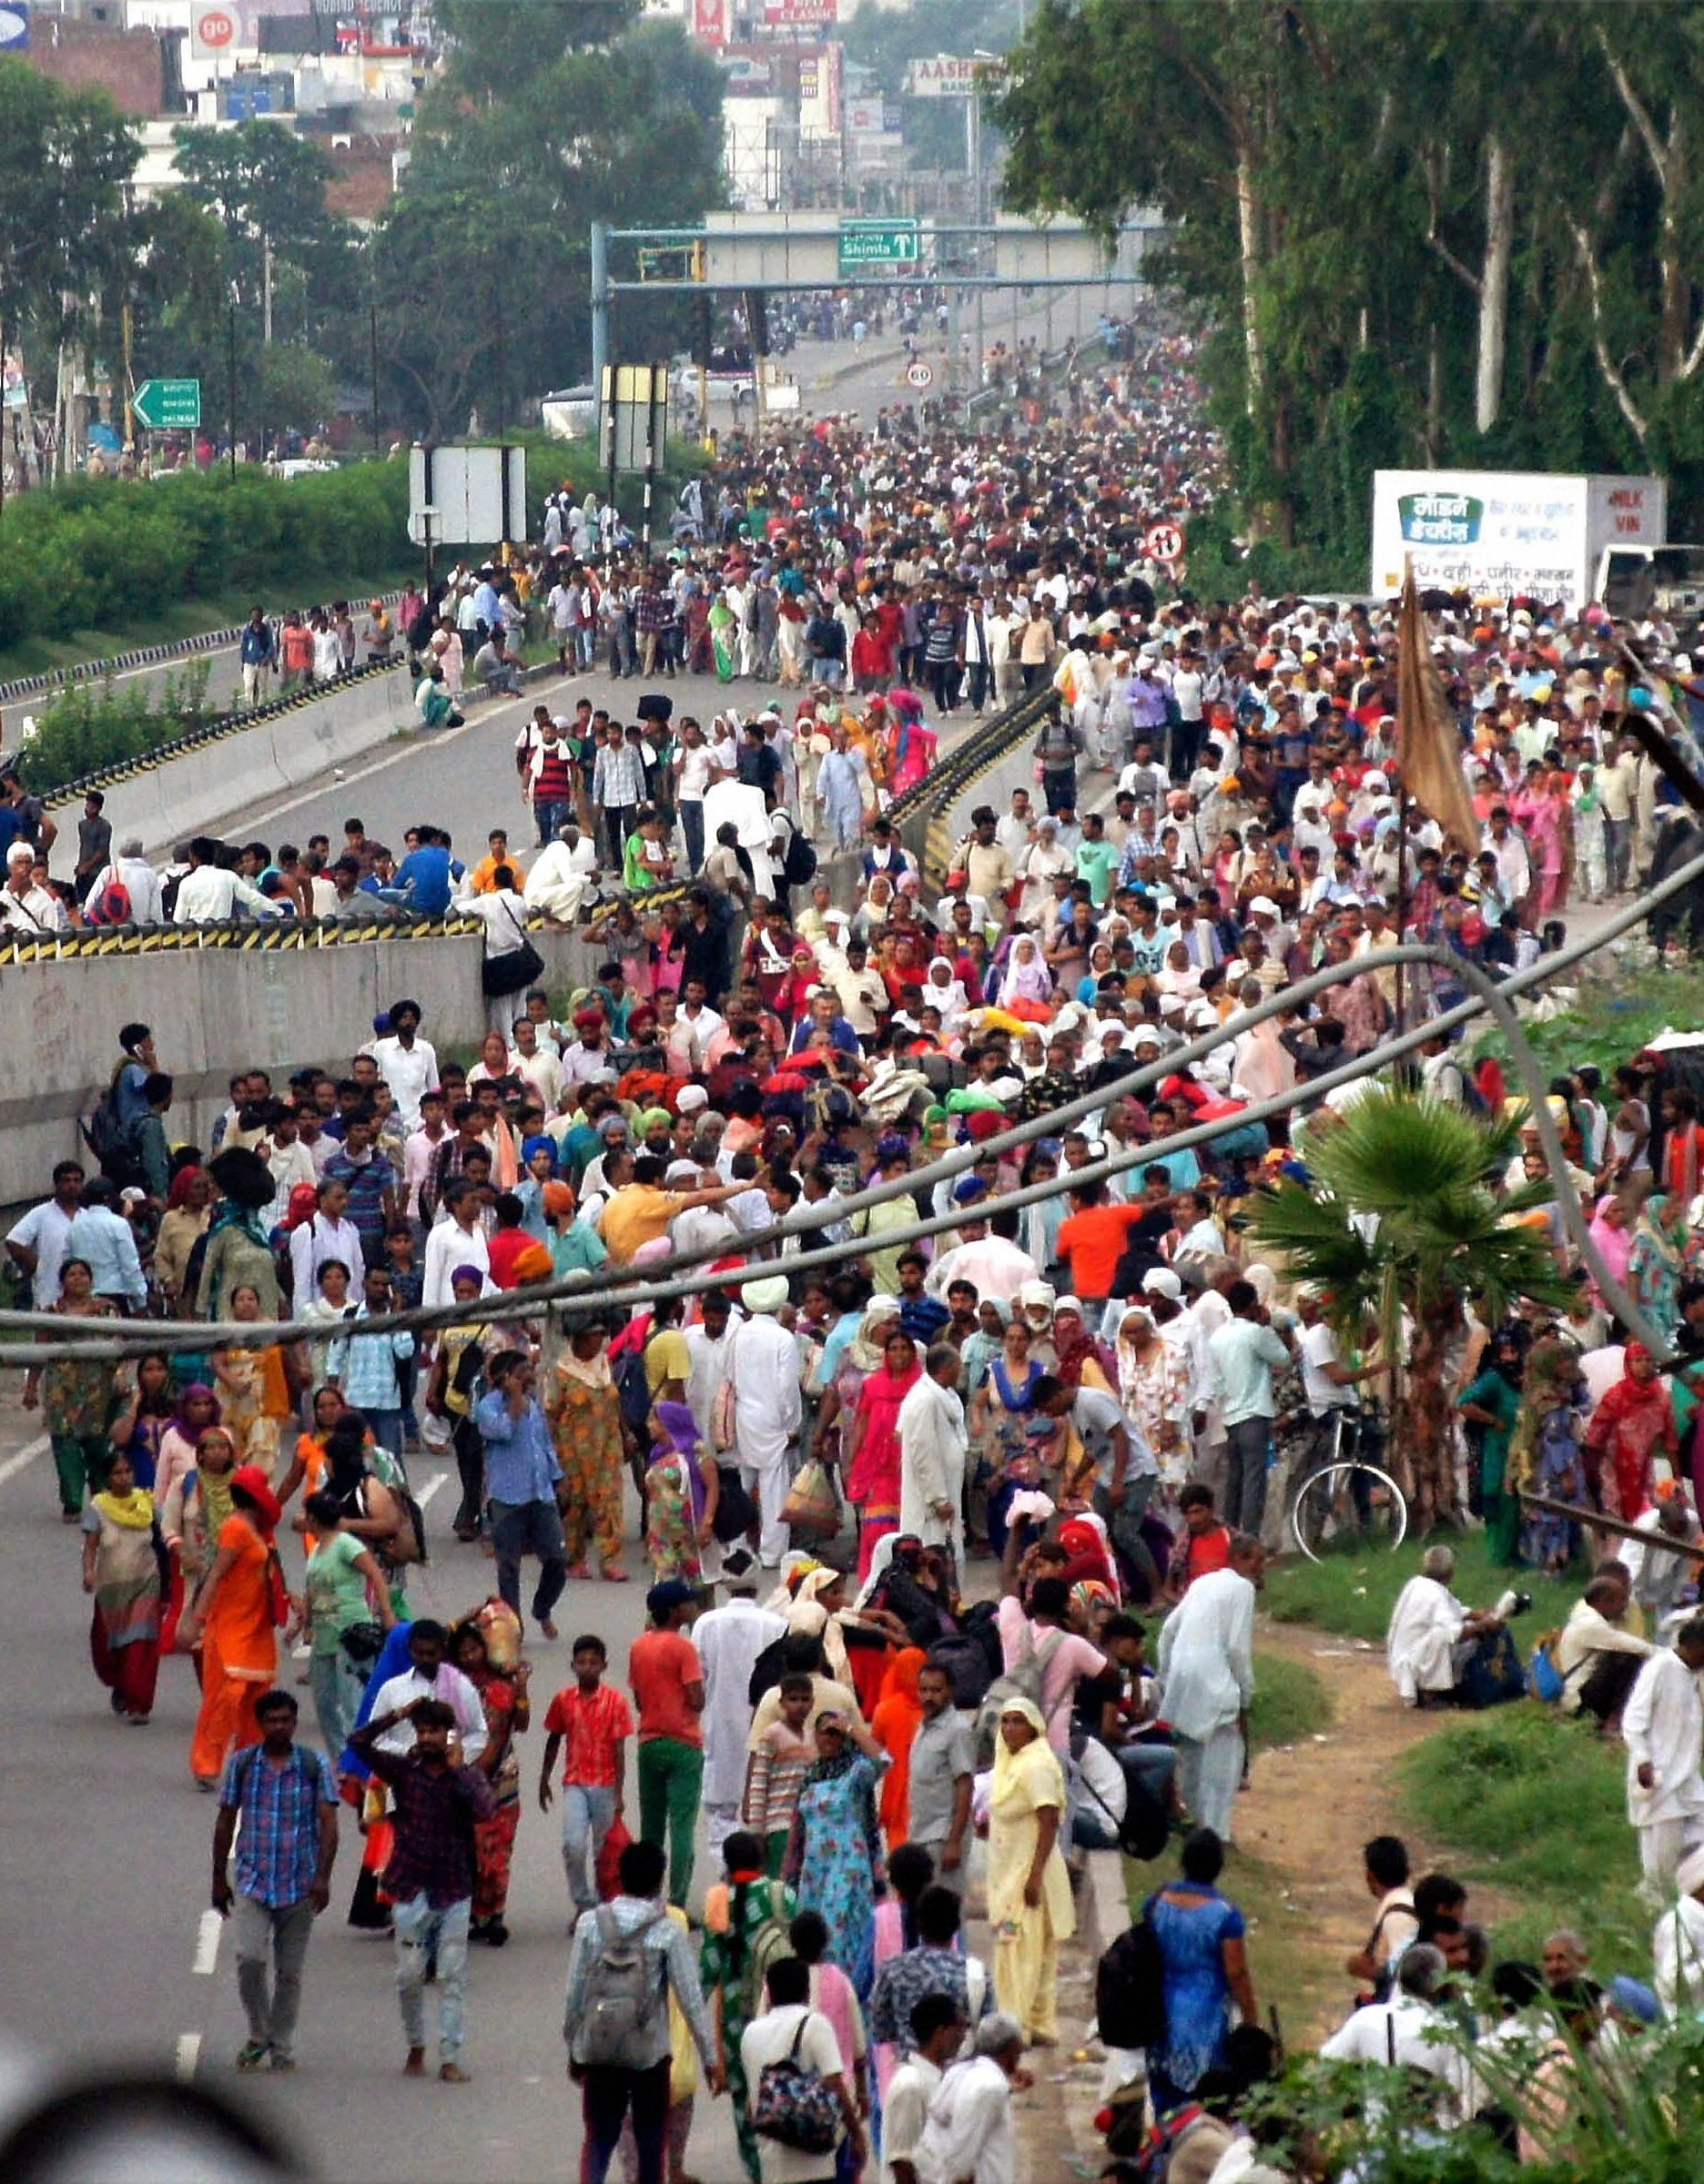 Minutes before the violence began, followers of Dera chief Ram Rahim gathered on the streets after his conviction was announced. (Credit: PTI)